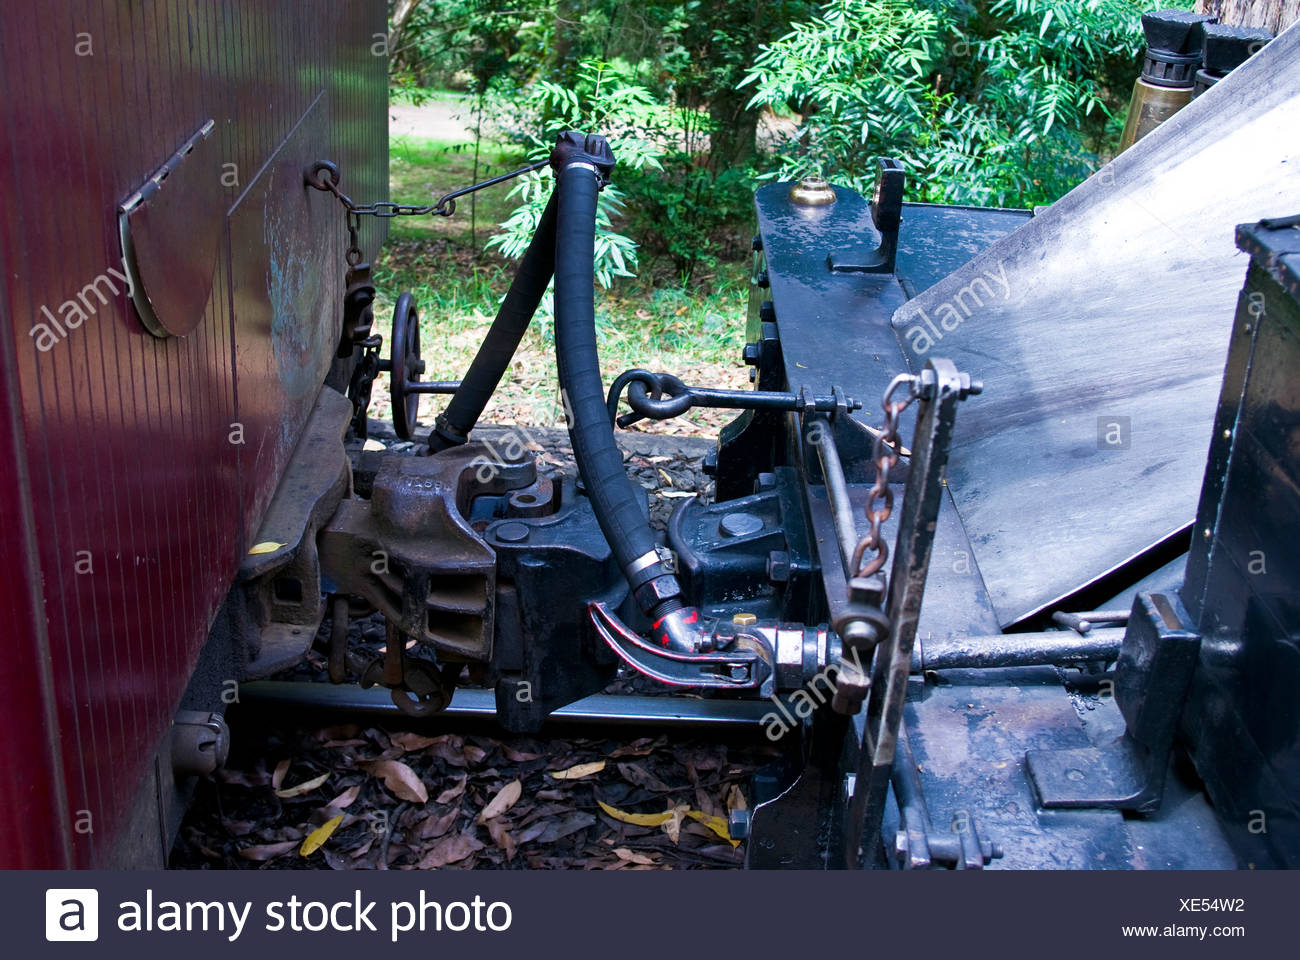 An antique steam engine locomotive coupled to a passenger carriage. - Stock Image